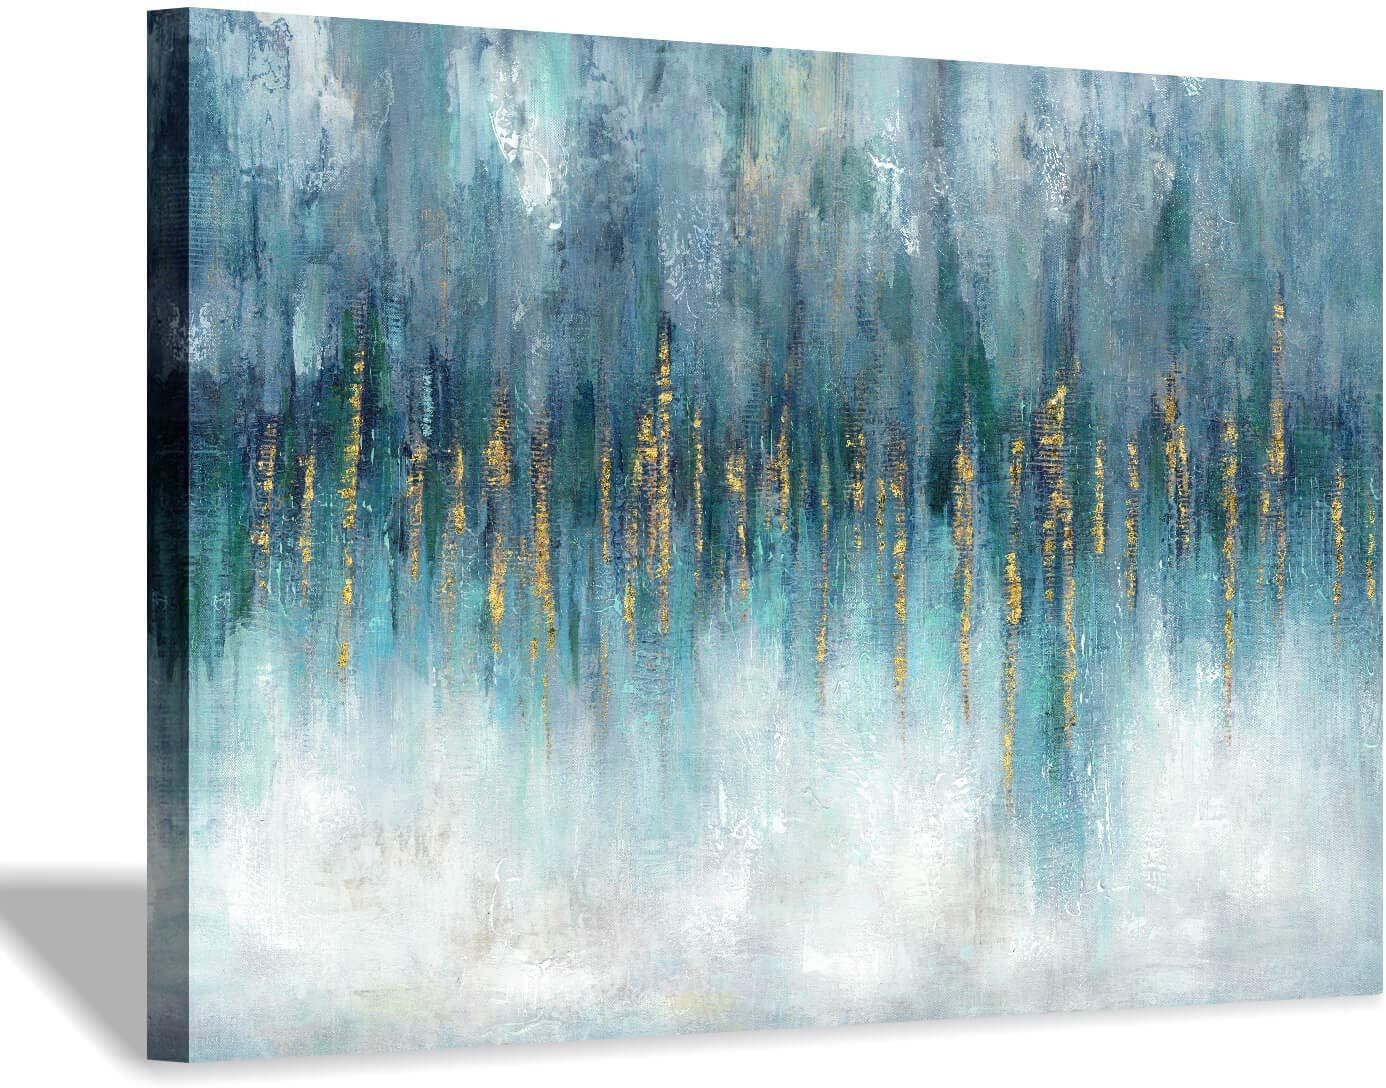 Hardy Gallery Abstract Picture Wall Art Canvas: Modern Artwork Texture Painting on Canvas for Bedroom (36'' x 24'' x 1 Panel)